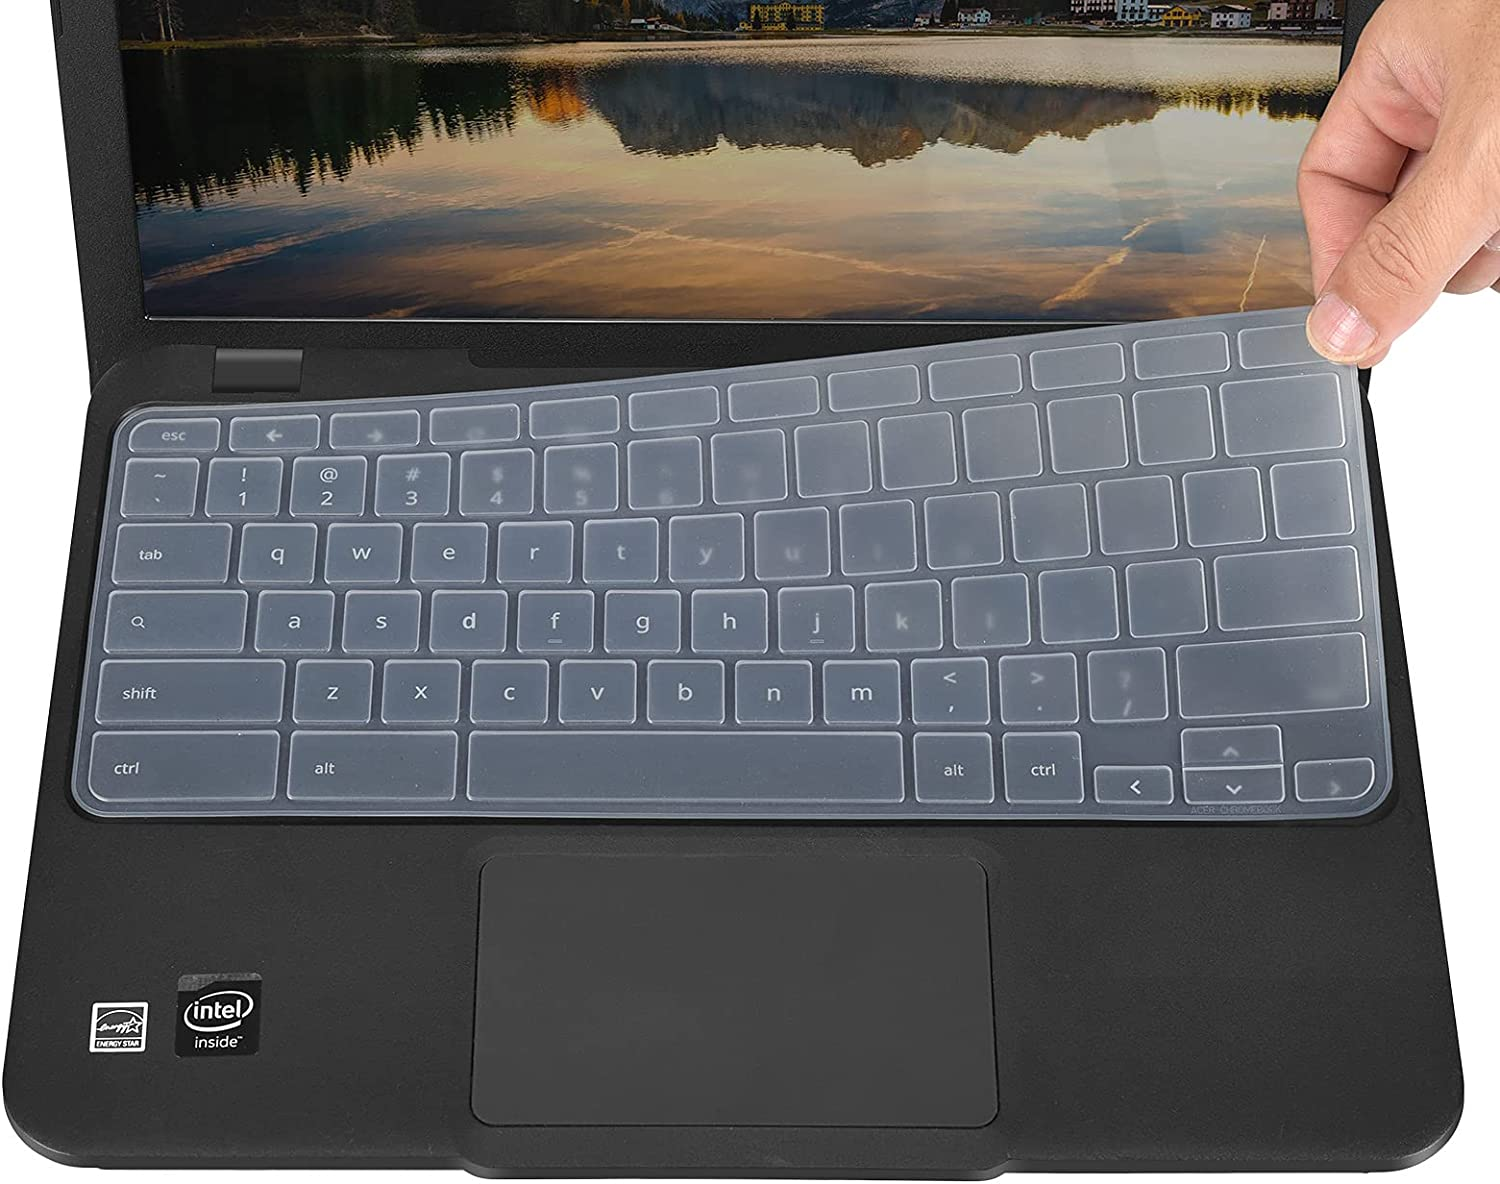 Keyboard Cover for Acer Chromebook R11 CB5-132T, Chromebook 14 CB3-431, Chromebook 514 CB514, Chromebook CB3-532, Chromebook R 13 CB5-312T, Chromebook Spin 311 CP311 CP315 CP713 - Clear